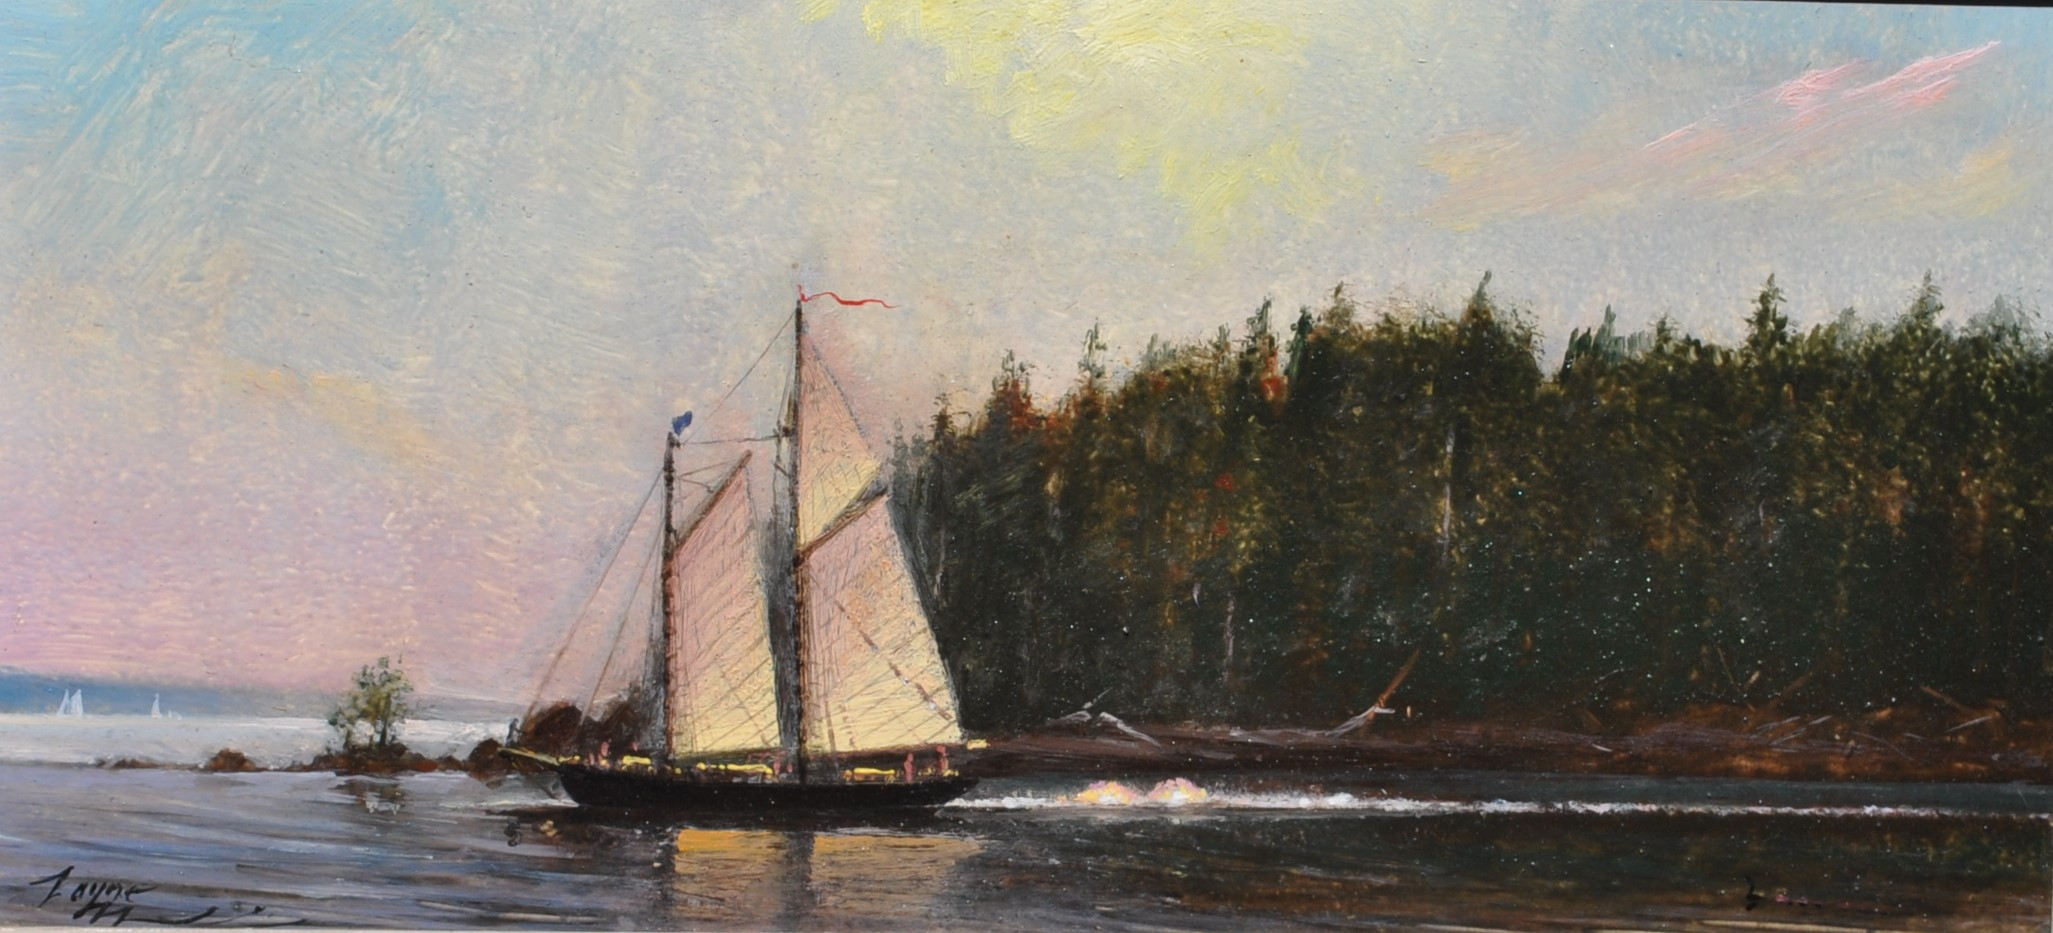 PETER ARGUIMBAU    Maine Schooner, Penobscot Bay, ME    An inlet along the south-central coast of Maine. Along the bay you can find ports like Rockland, Rockport, and Stonington.  10 x 22 inche